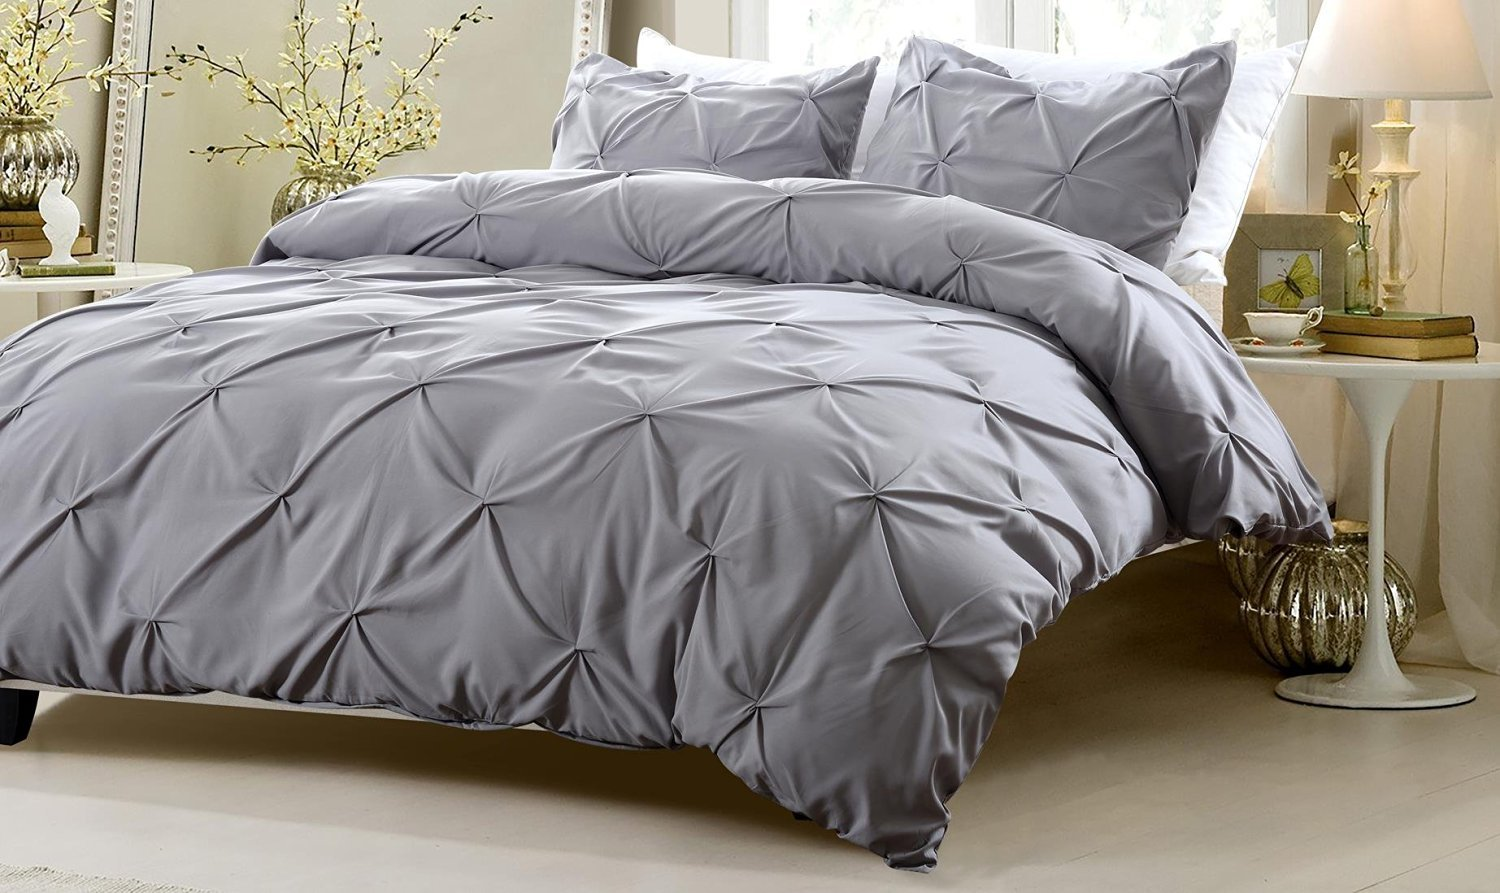 duvet queen by height ashley setsqueen sets item gray bedding threshold white design set amantipoint width products trim cover signature